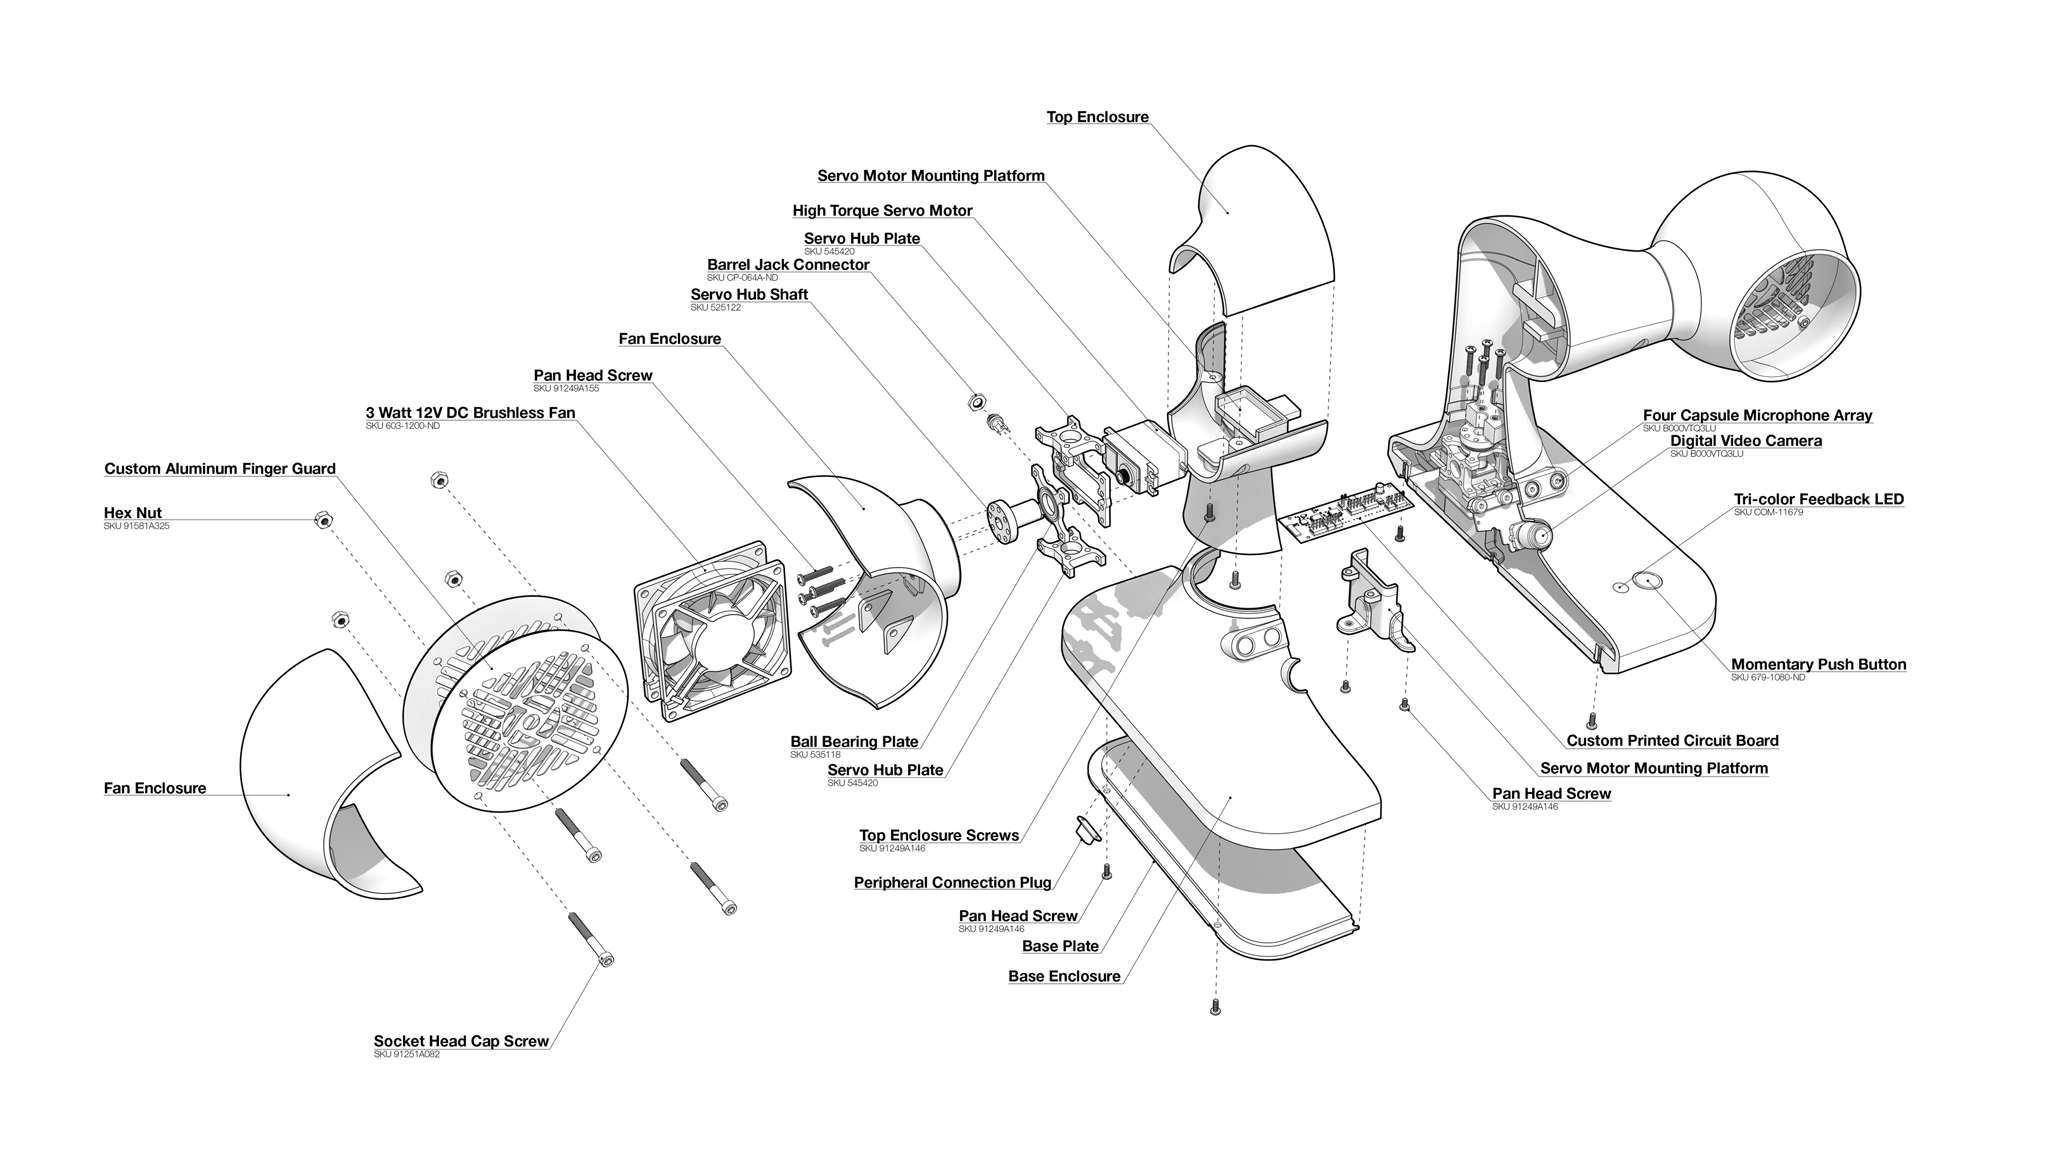 An exploded axon drawing of the Smart Fan.